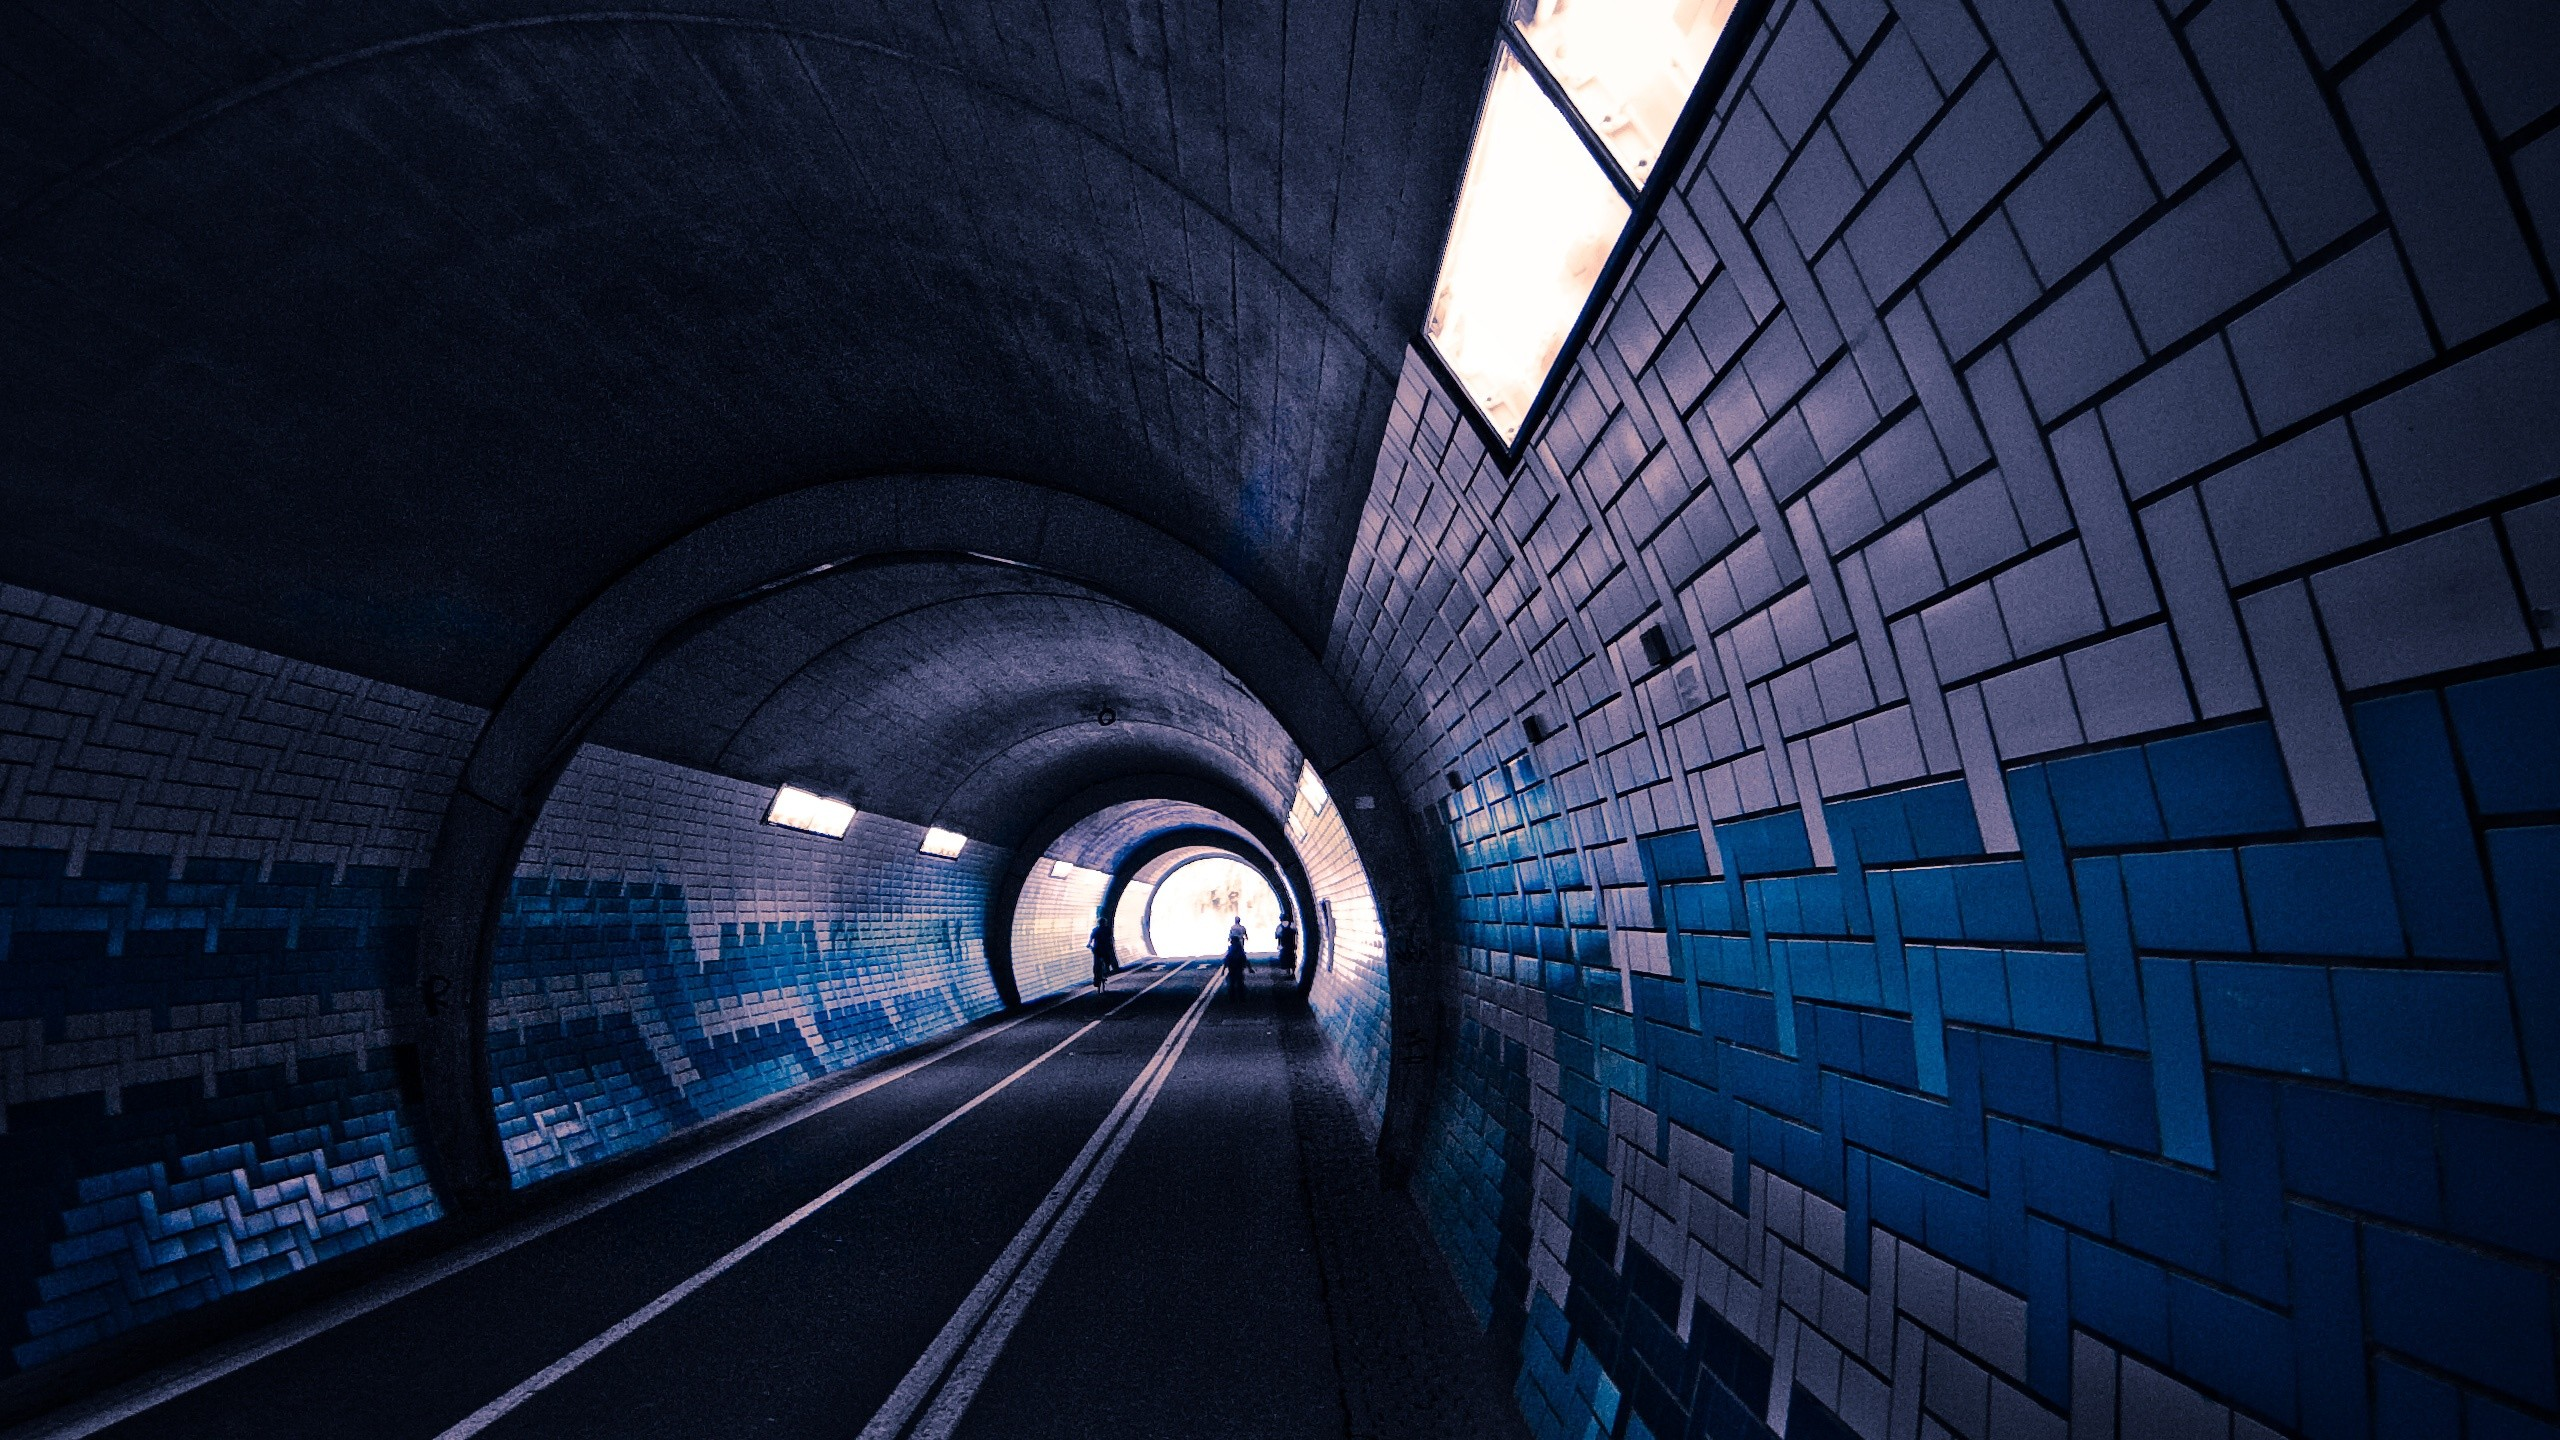 Dark tunnel. How to set wallpaper on your desktop? Click the  download link from above and set the wallpaper on the desktop from your OS.